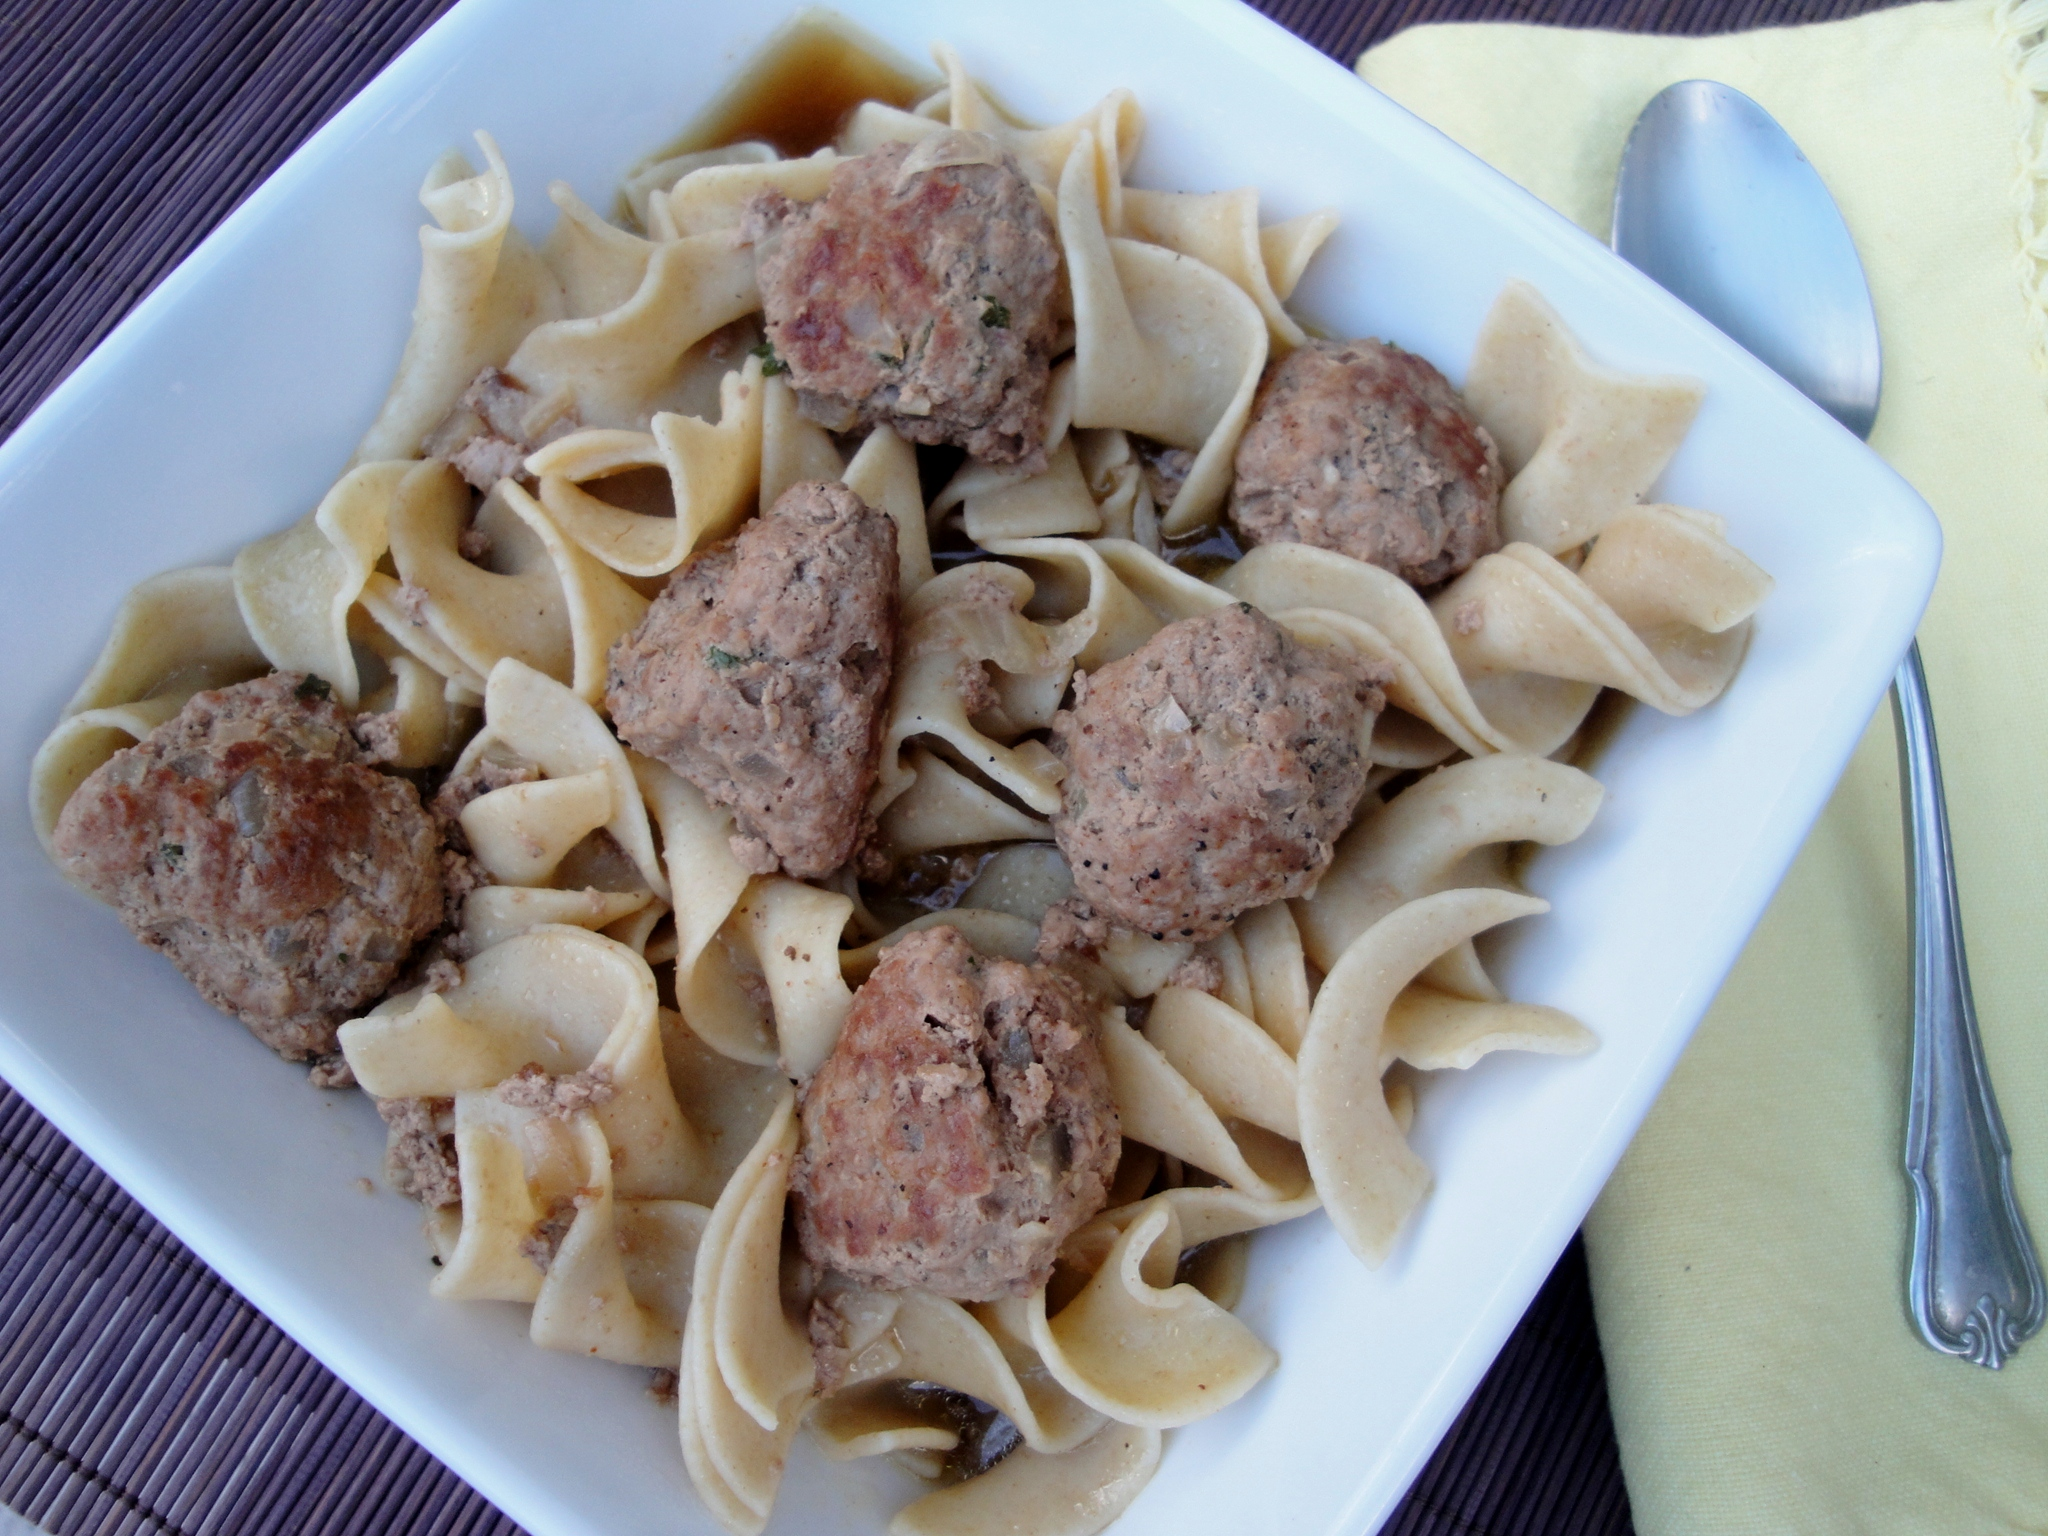 Hungarian Meatballs with Noodles | Creative Kitchen